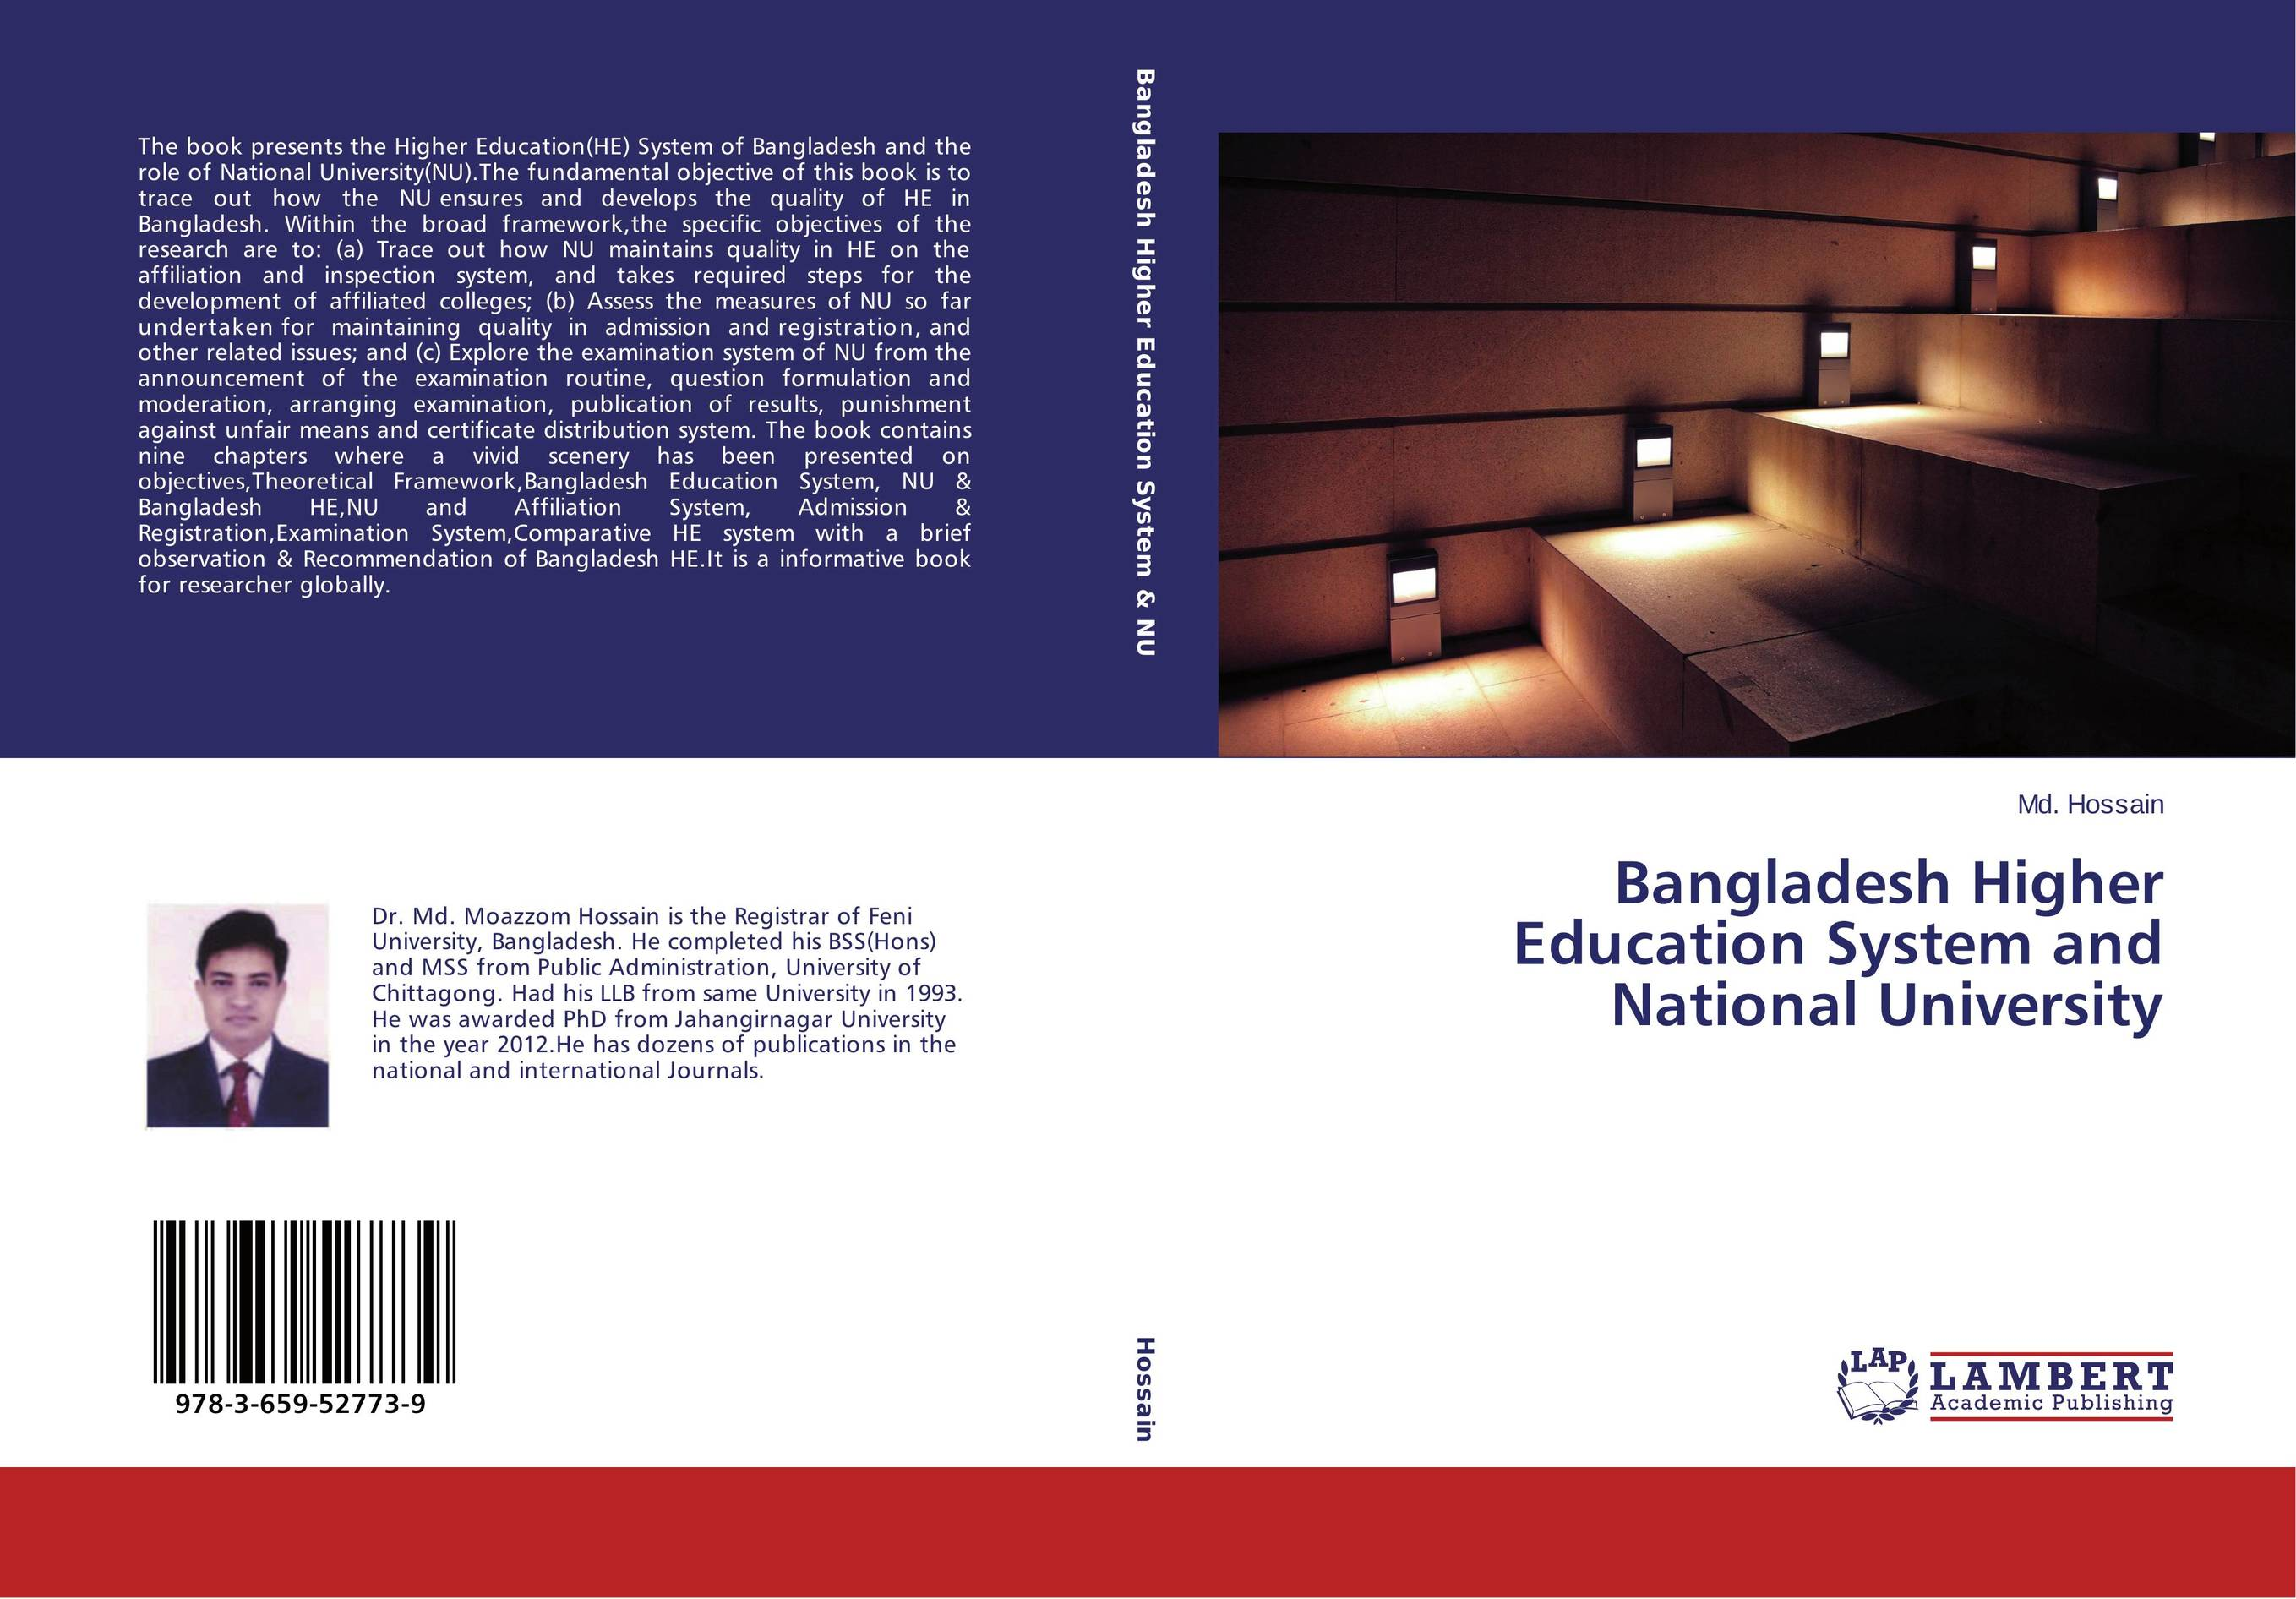 bangladesh education system The education system of bangladesh faces an enormous challenge in the form of a huge population, poorly educated and largely impoverished, and a lack of funds to address their needs gradual improvements are being made, but the system still struggles to meet the needs of the bangladeshi population.